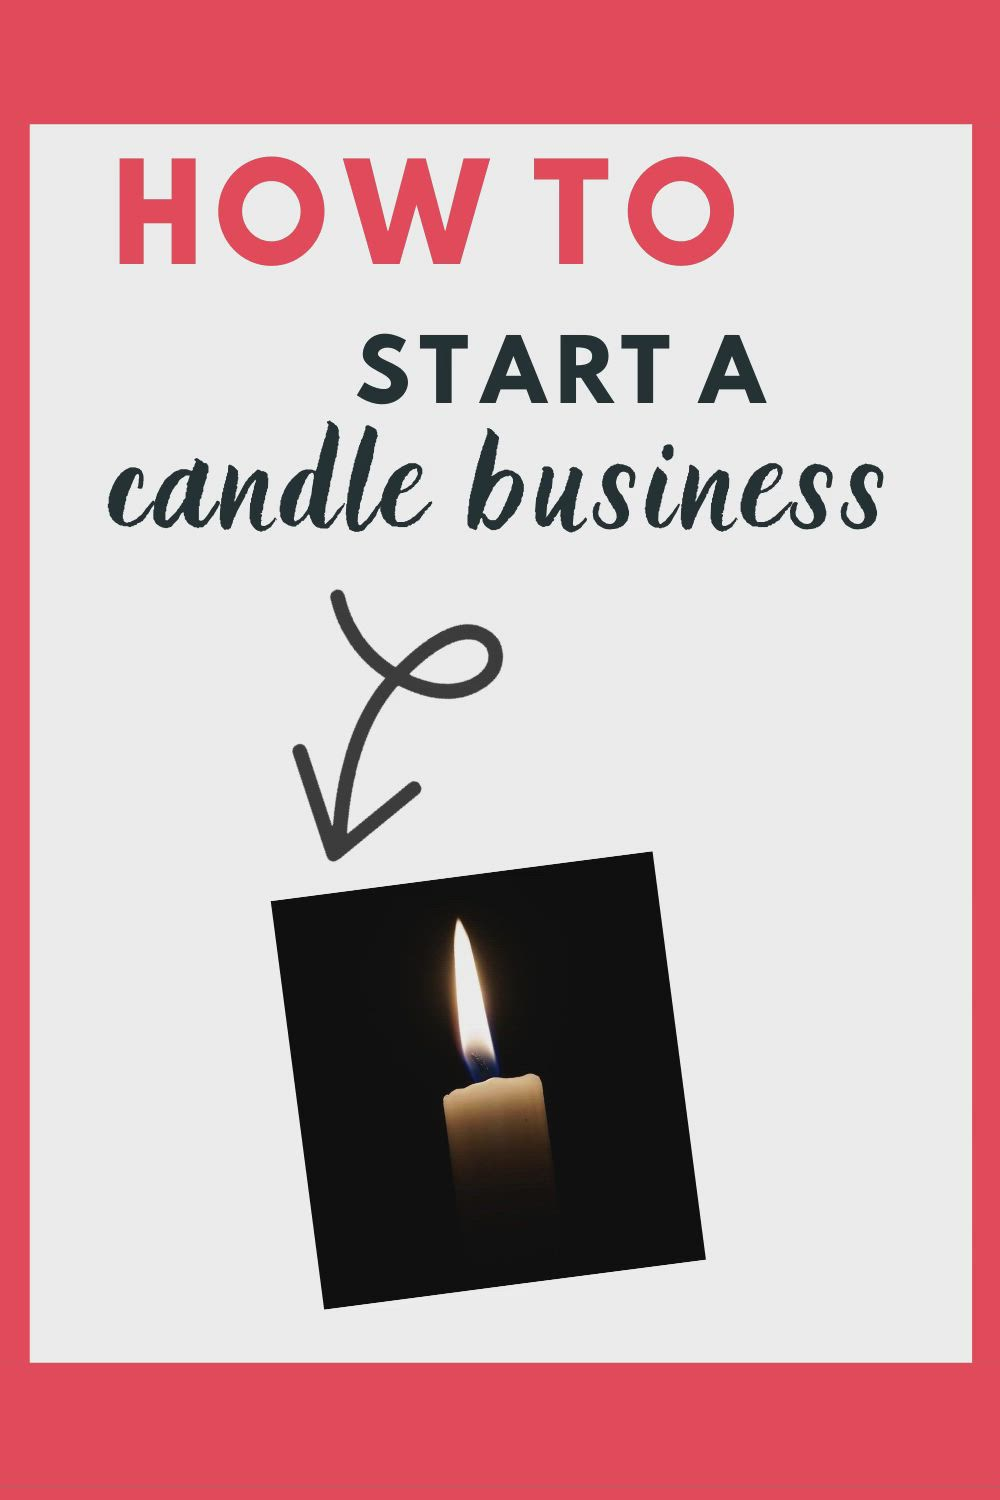 How To Start A Candle Business Candle Making At Home On A Budget Video